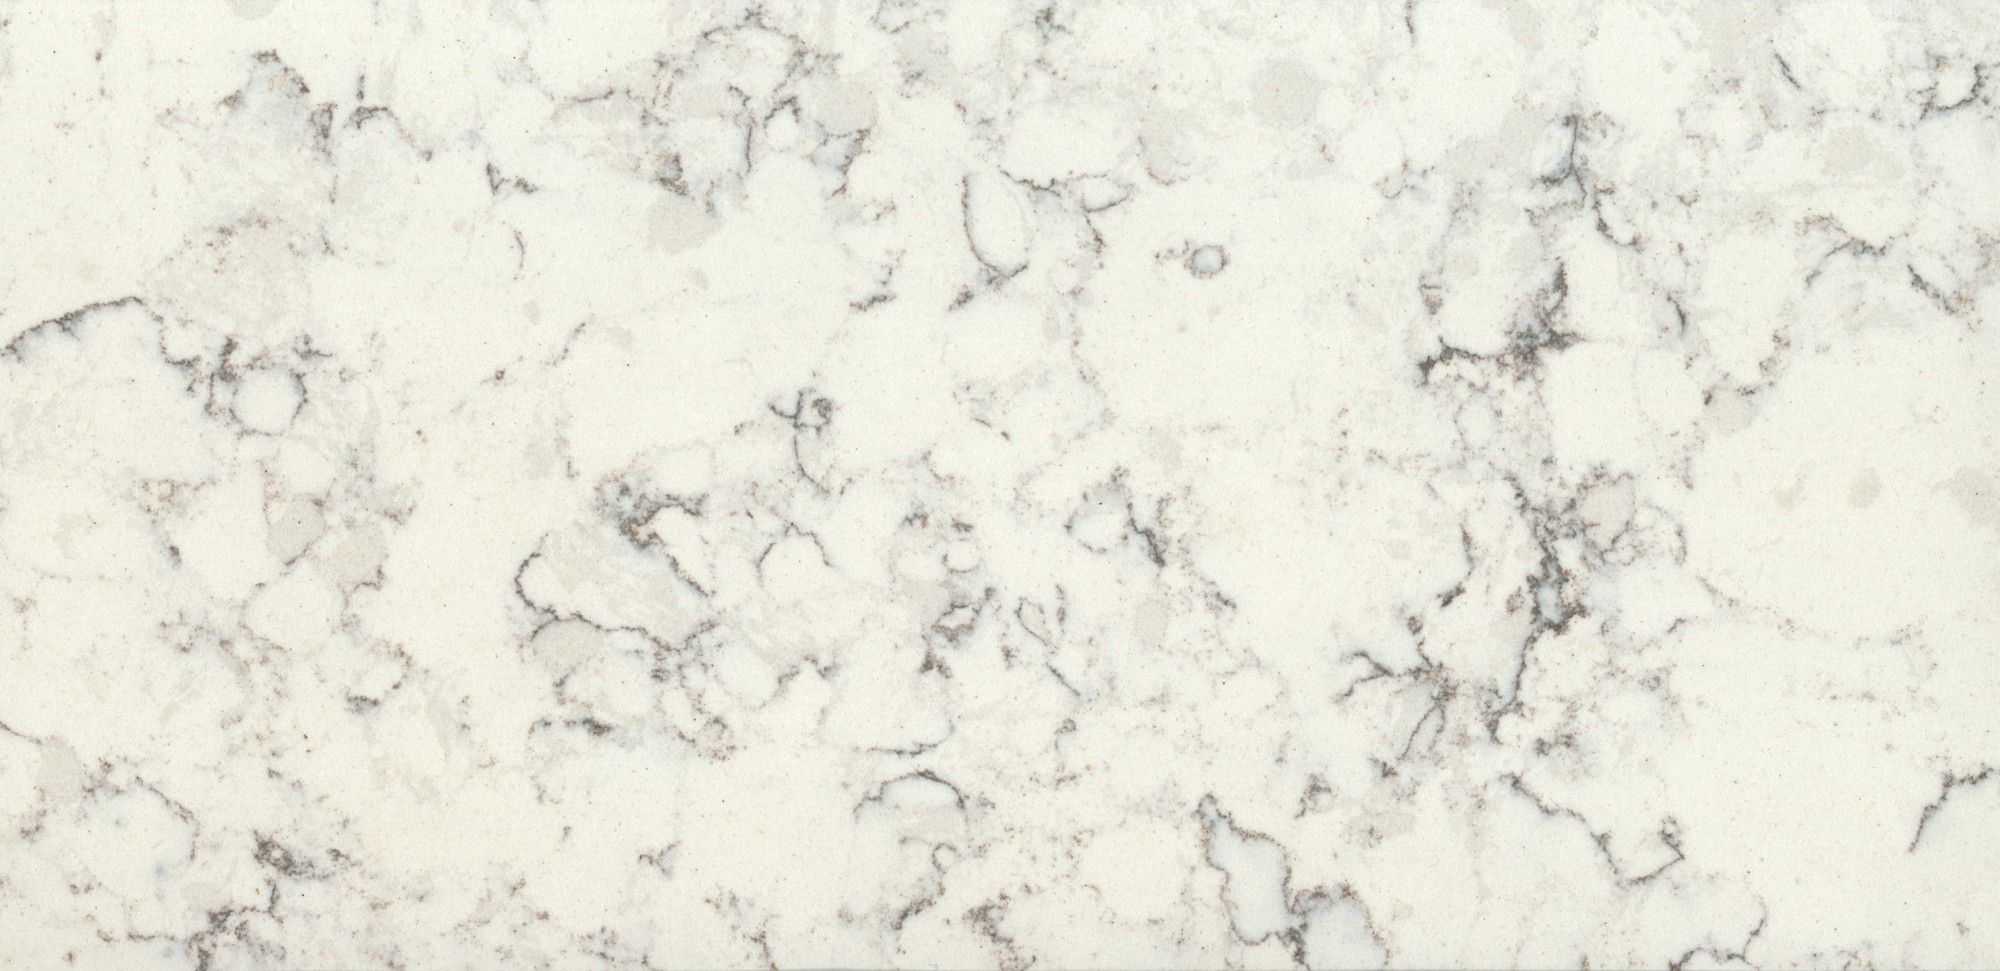 quartz blanc en destockage pays basque